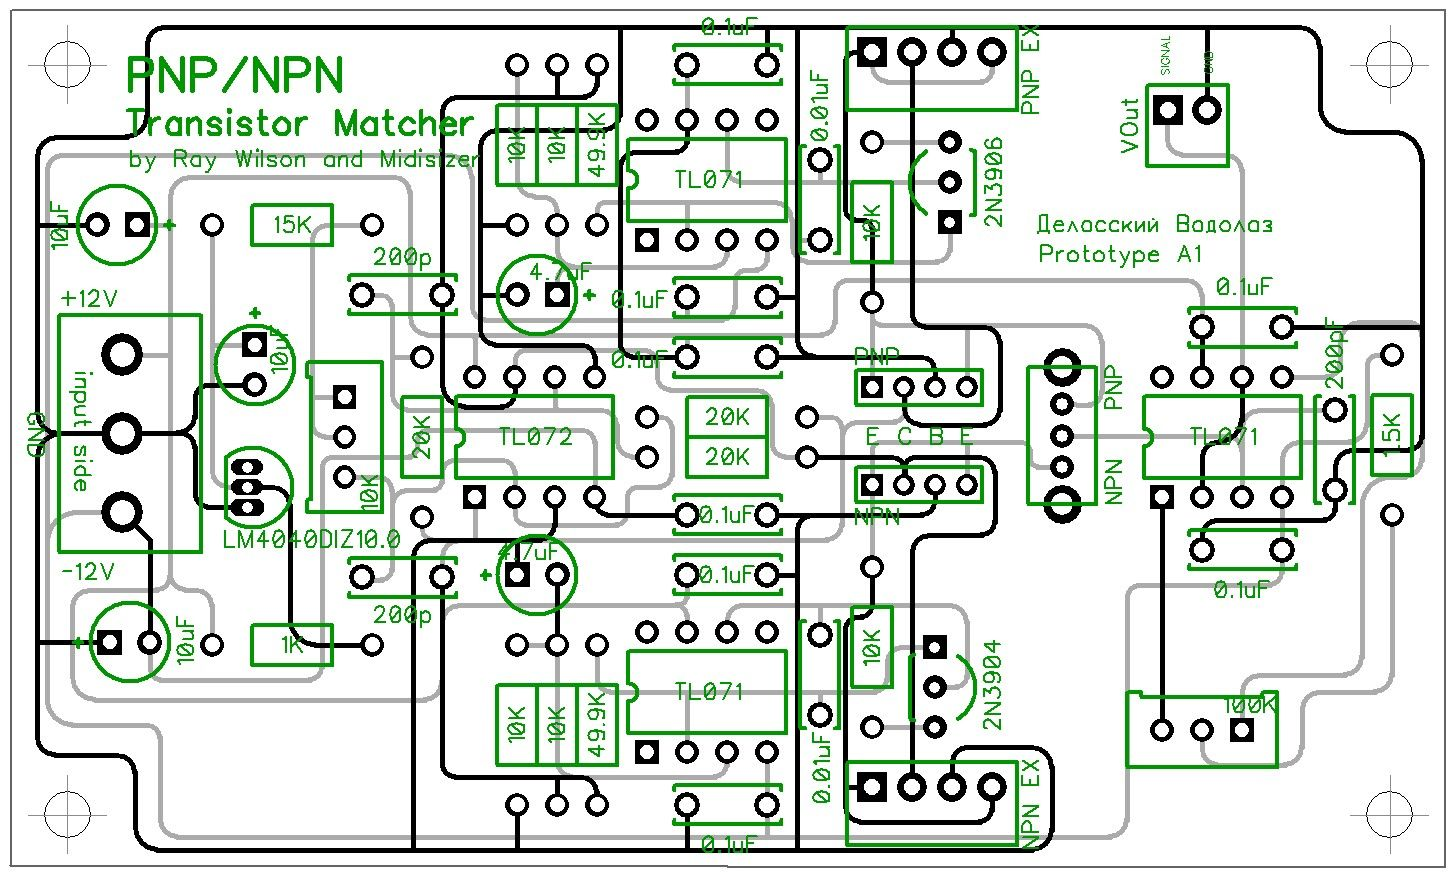 Midisizer Npn Pnp Transistor Matcher Pcb Based On Original Idea Of Diagram Ray Wilson Mfos